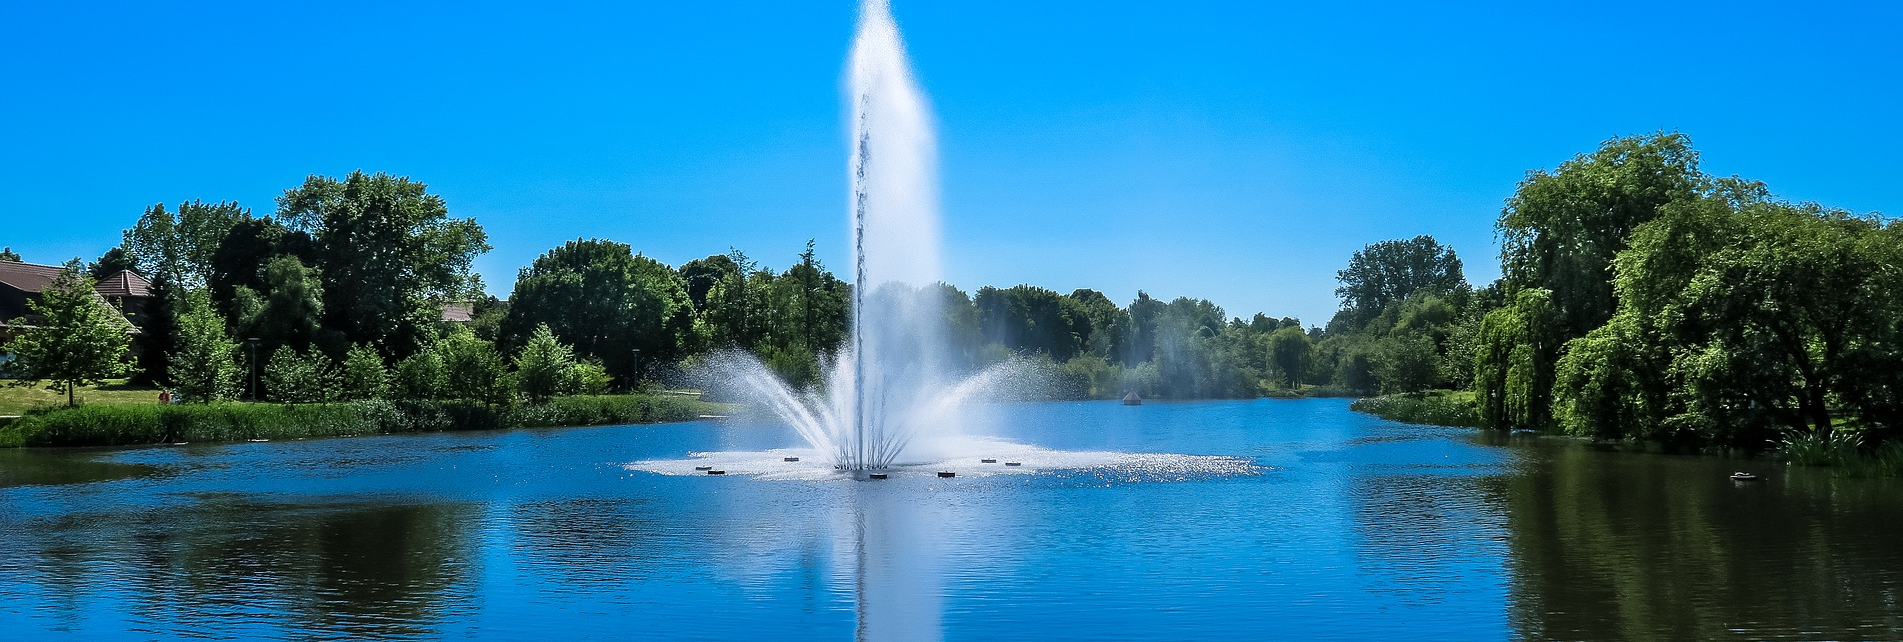 The Lake Doctor - lake management floating fountains Dallas Fort Worth Texas - Lake Management Company - Floating Fountains Aeration Systems Vegetation Control Fish Fish Feeders Installation & Design